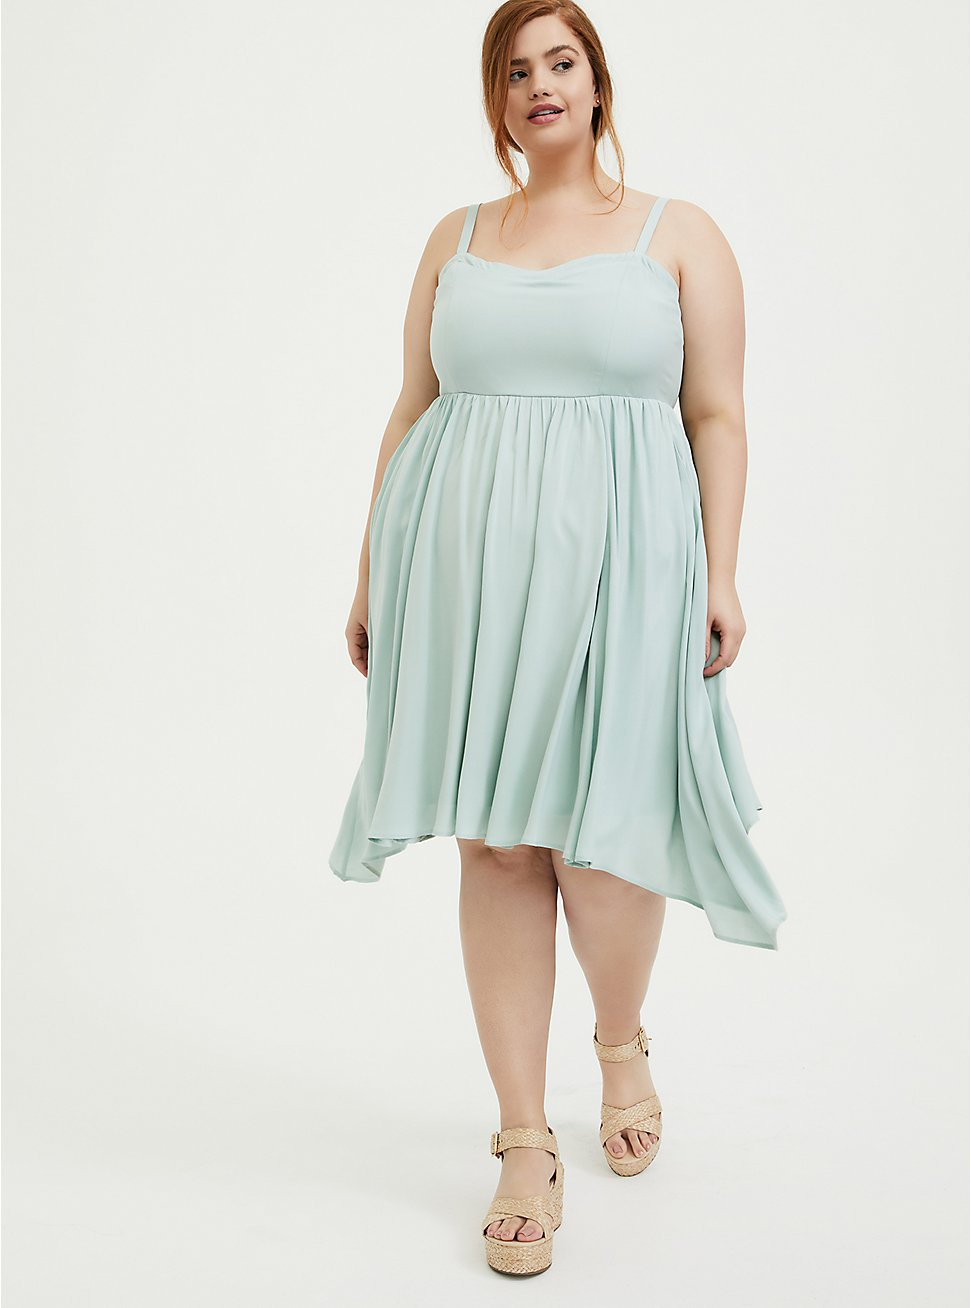 Plus Size Mint Blue Challis Sharkbite Skater Dress, HARBOR GREY, hi-res